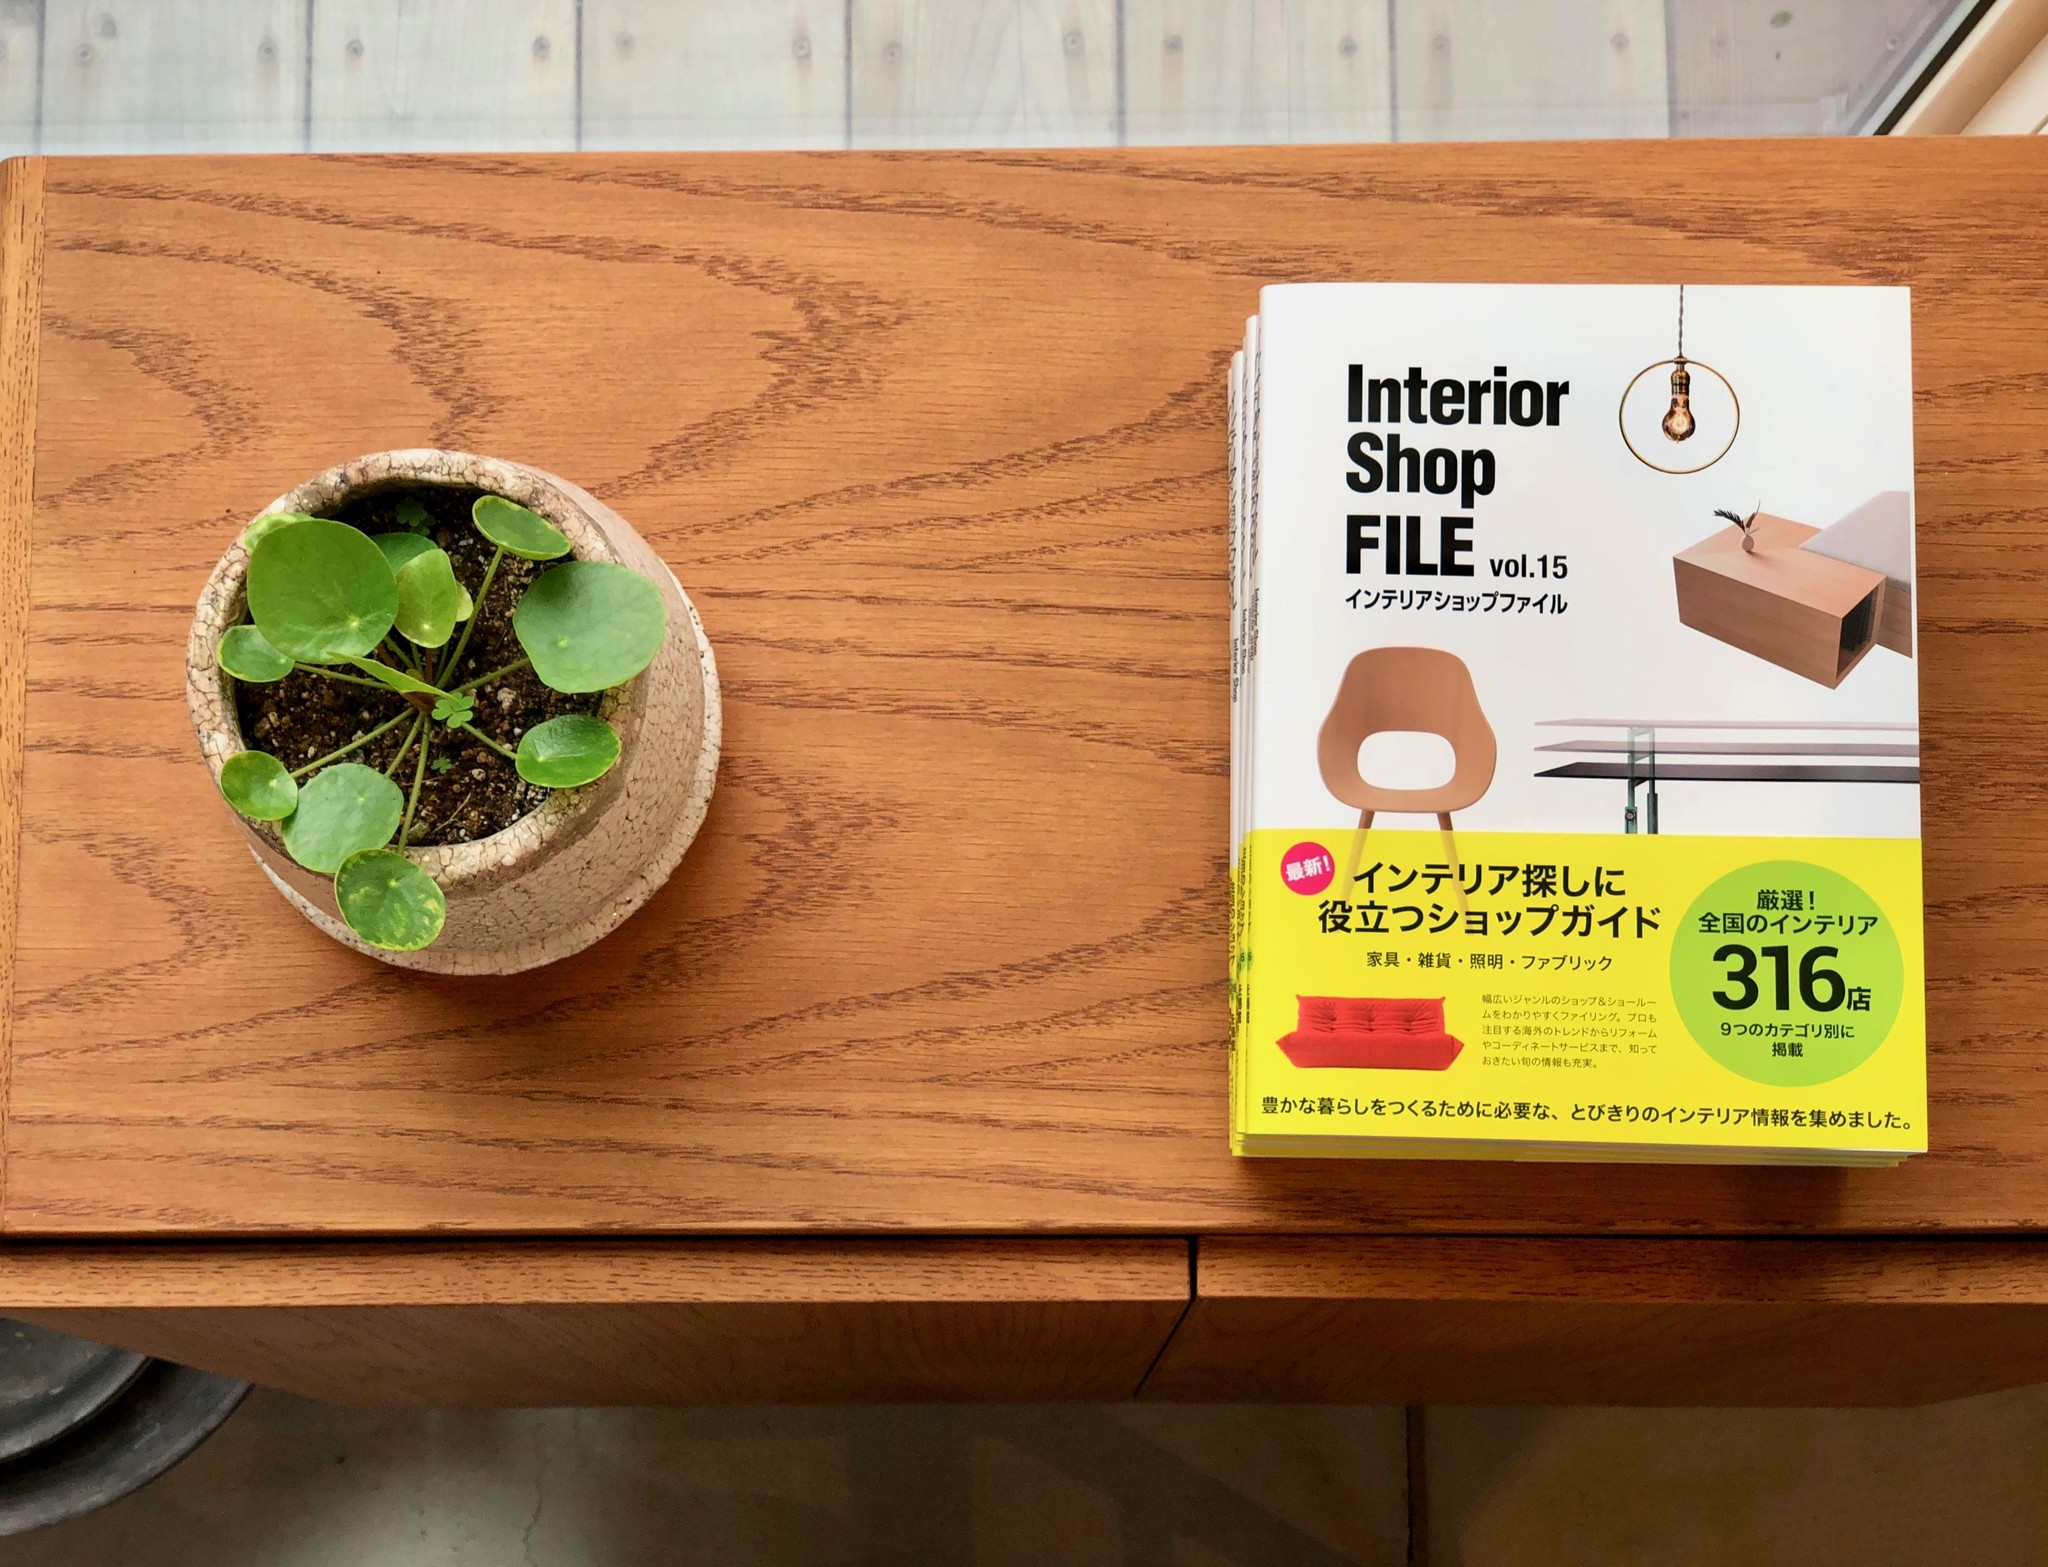 Interior Shop FILE vo.15